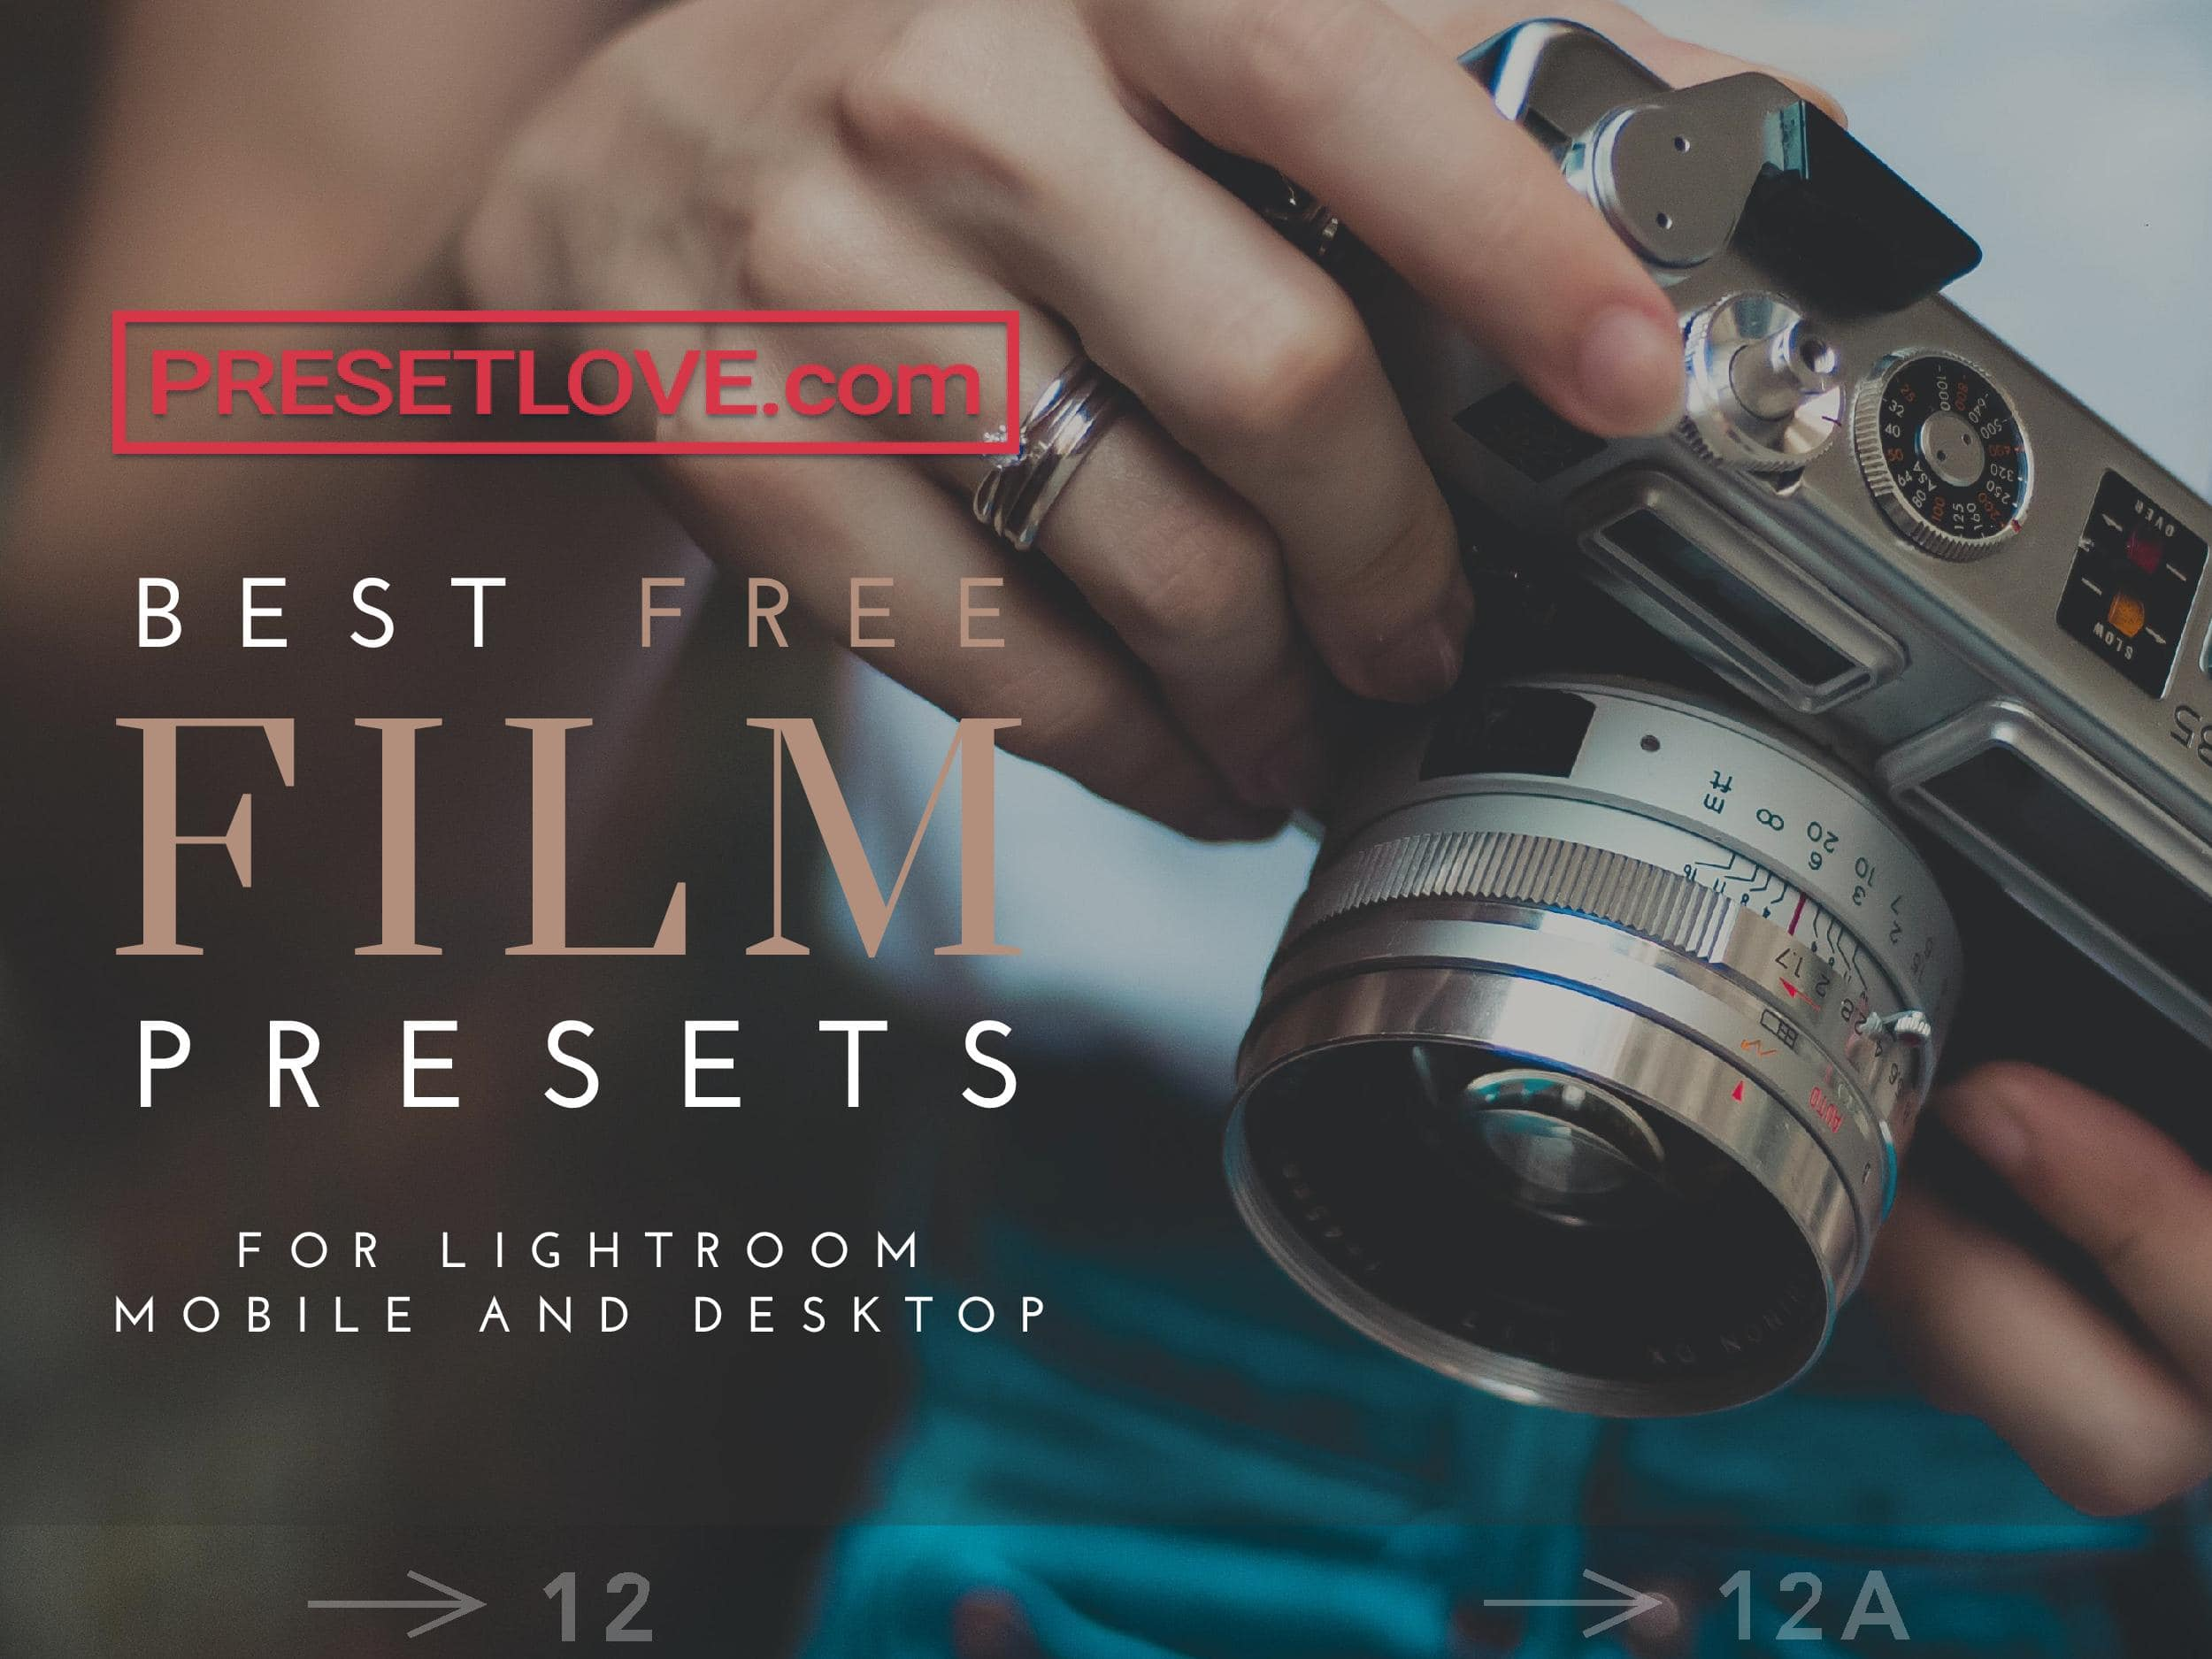 Best free film presets for Lightroom by PresetLove